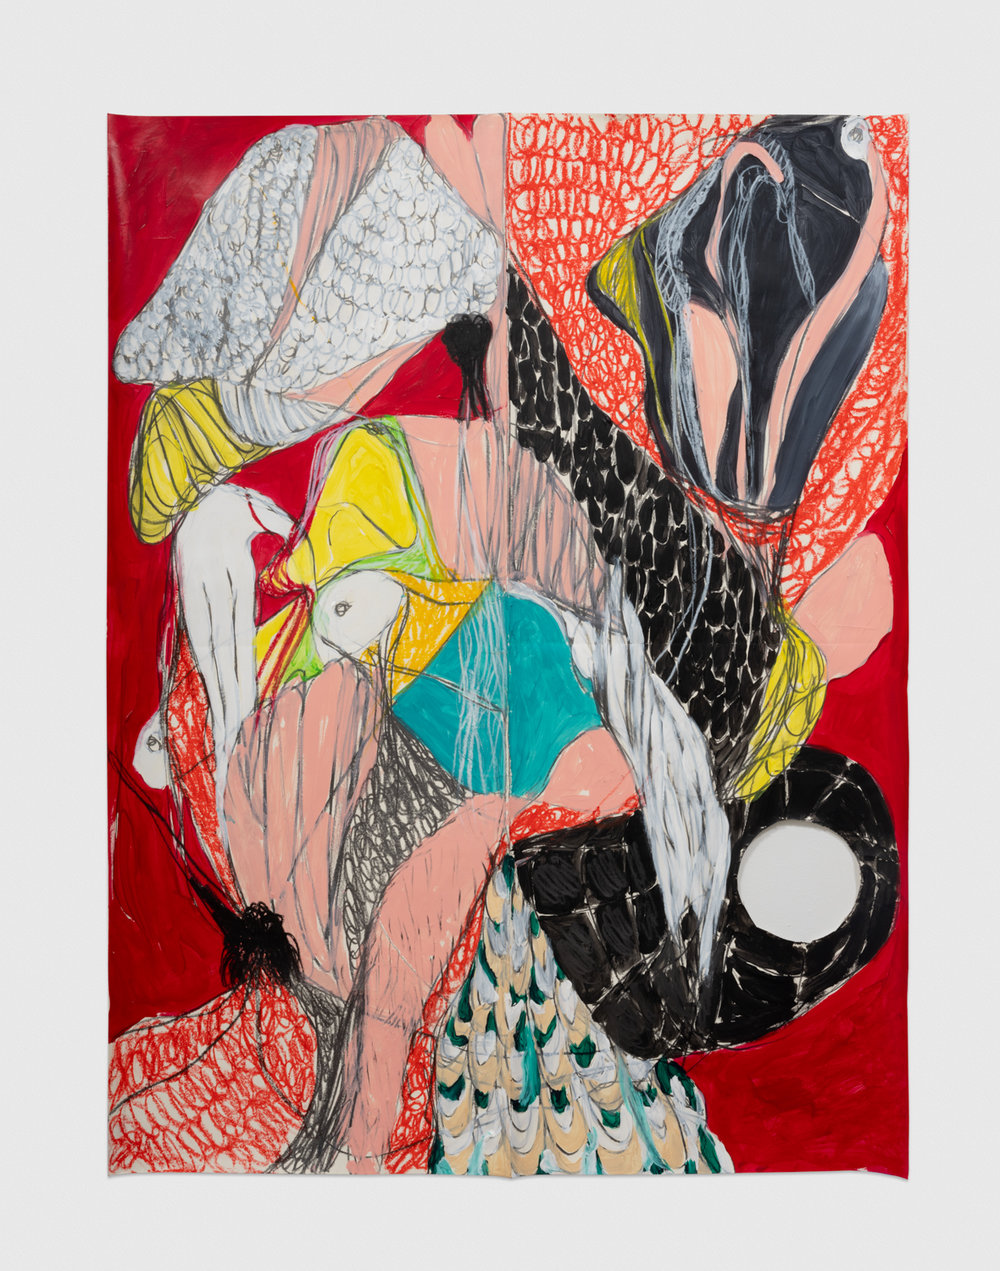 Naotaka Hiro Untitled (Perching, Red), 2018 Acrylic, graphite and grease pencil on paper 42h x 32w in NaoH019